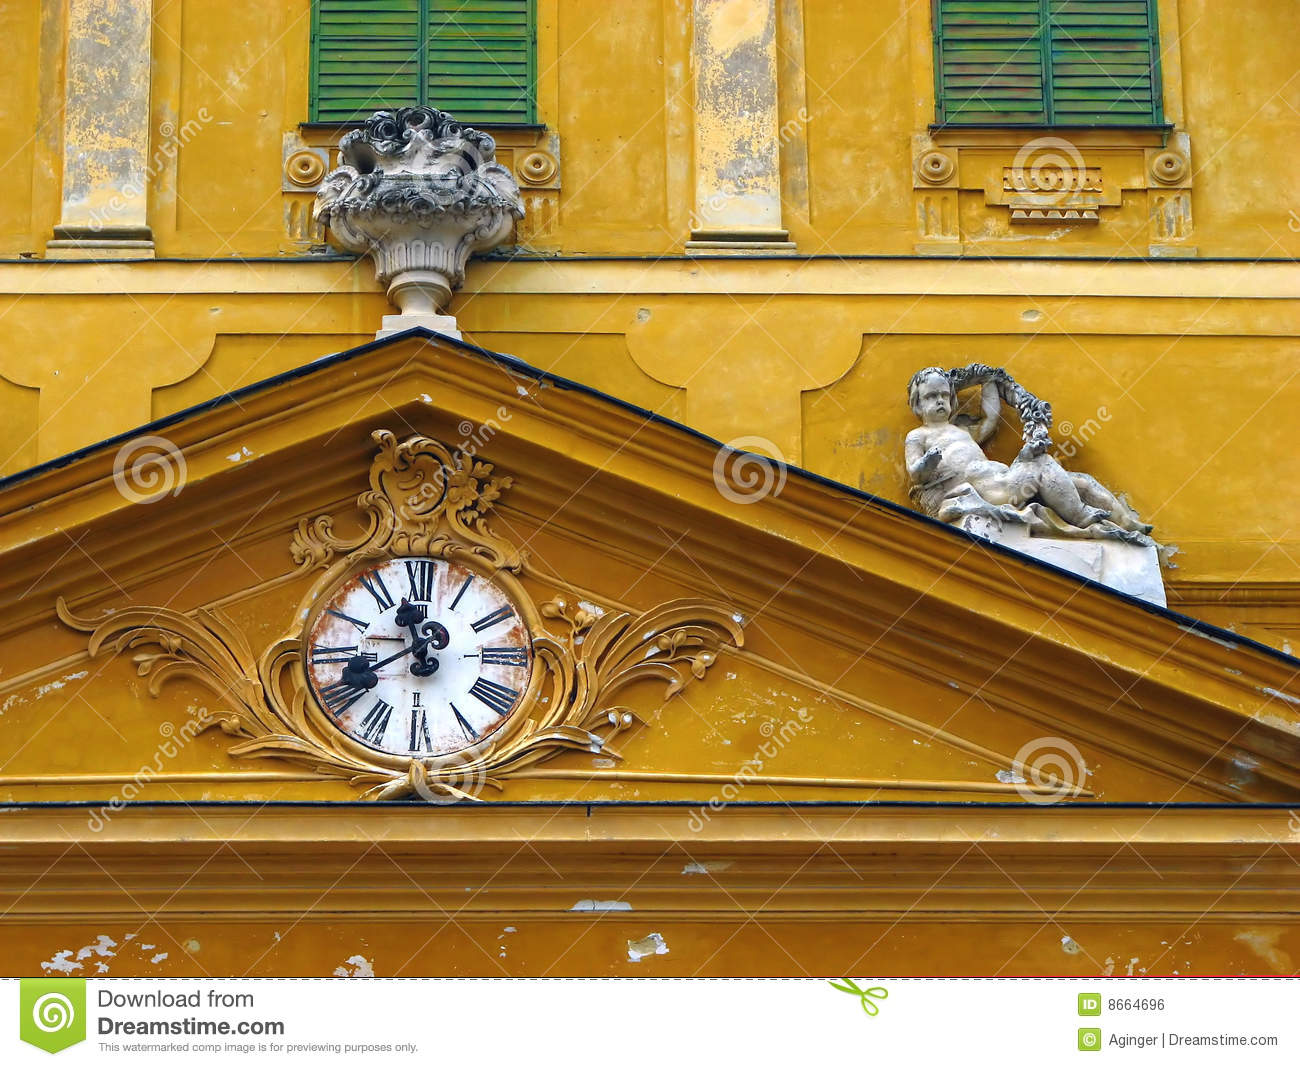 tympanum of old yellow castle royalty free stock image - image